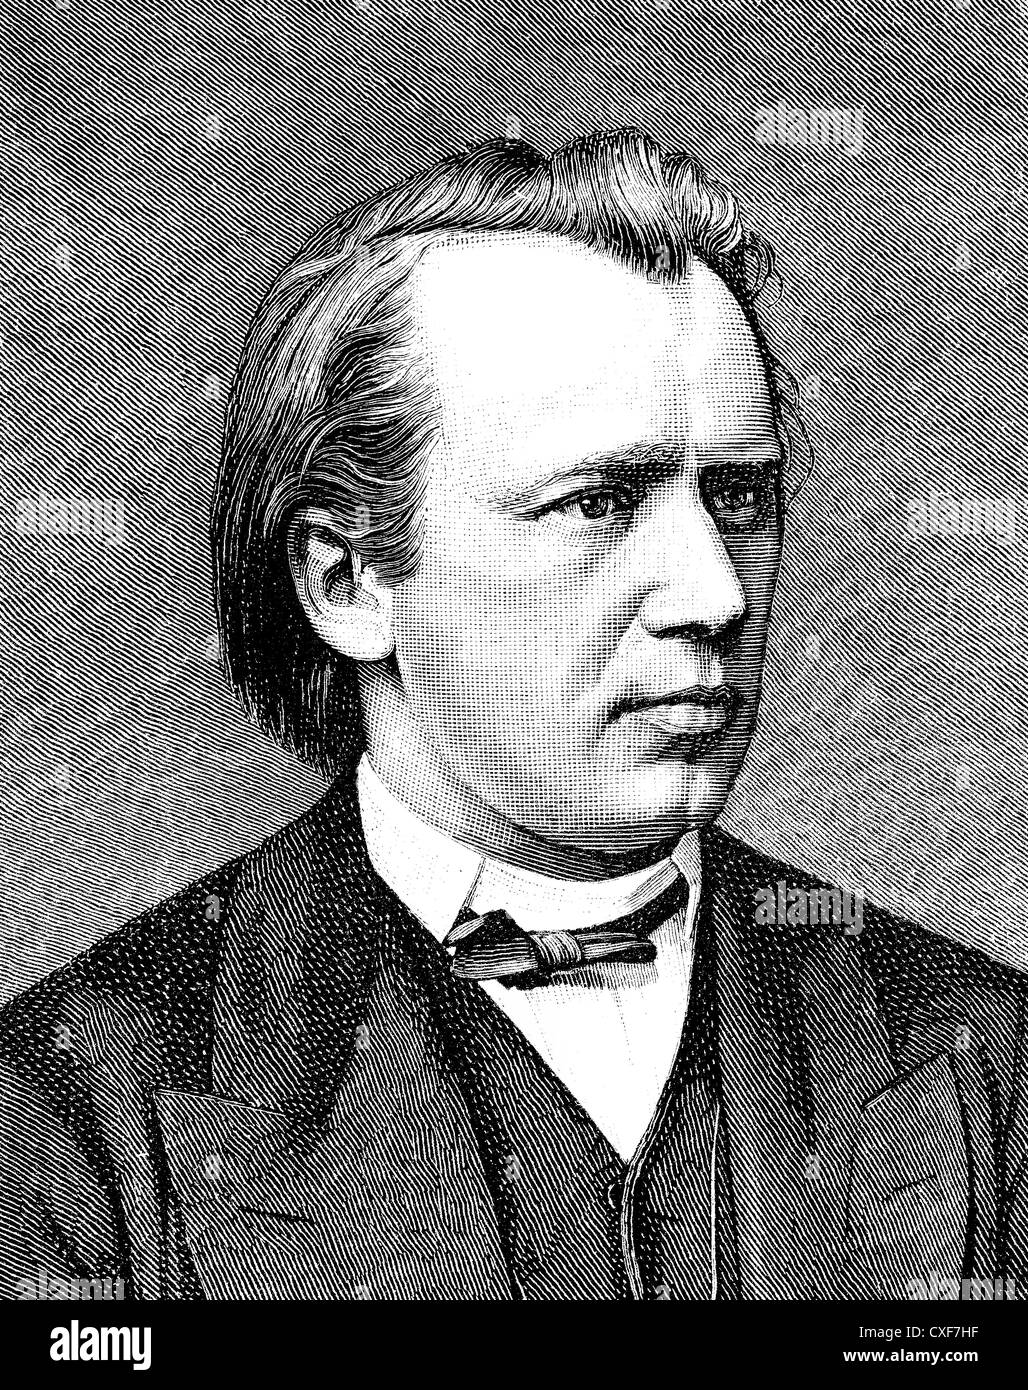 Johannes Brahms, 1833-1897, German composer, pianist and conductor of Romanticism, - Stock Image